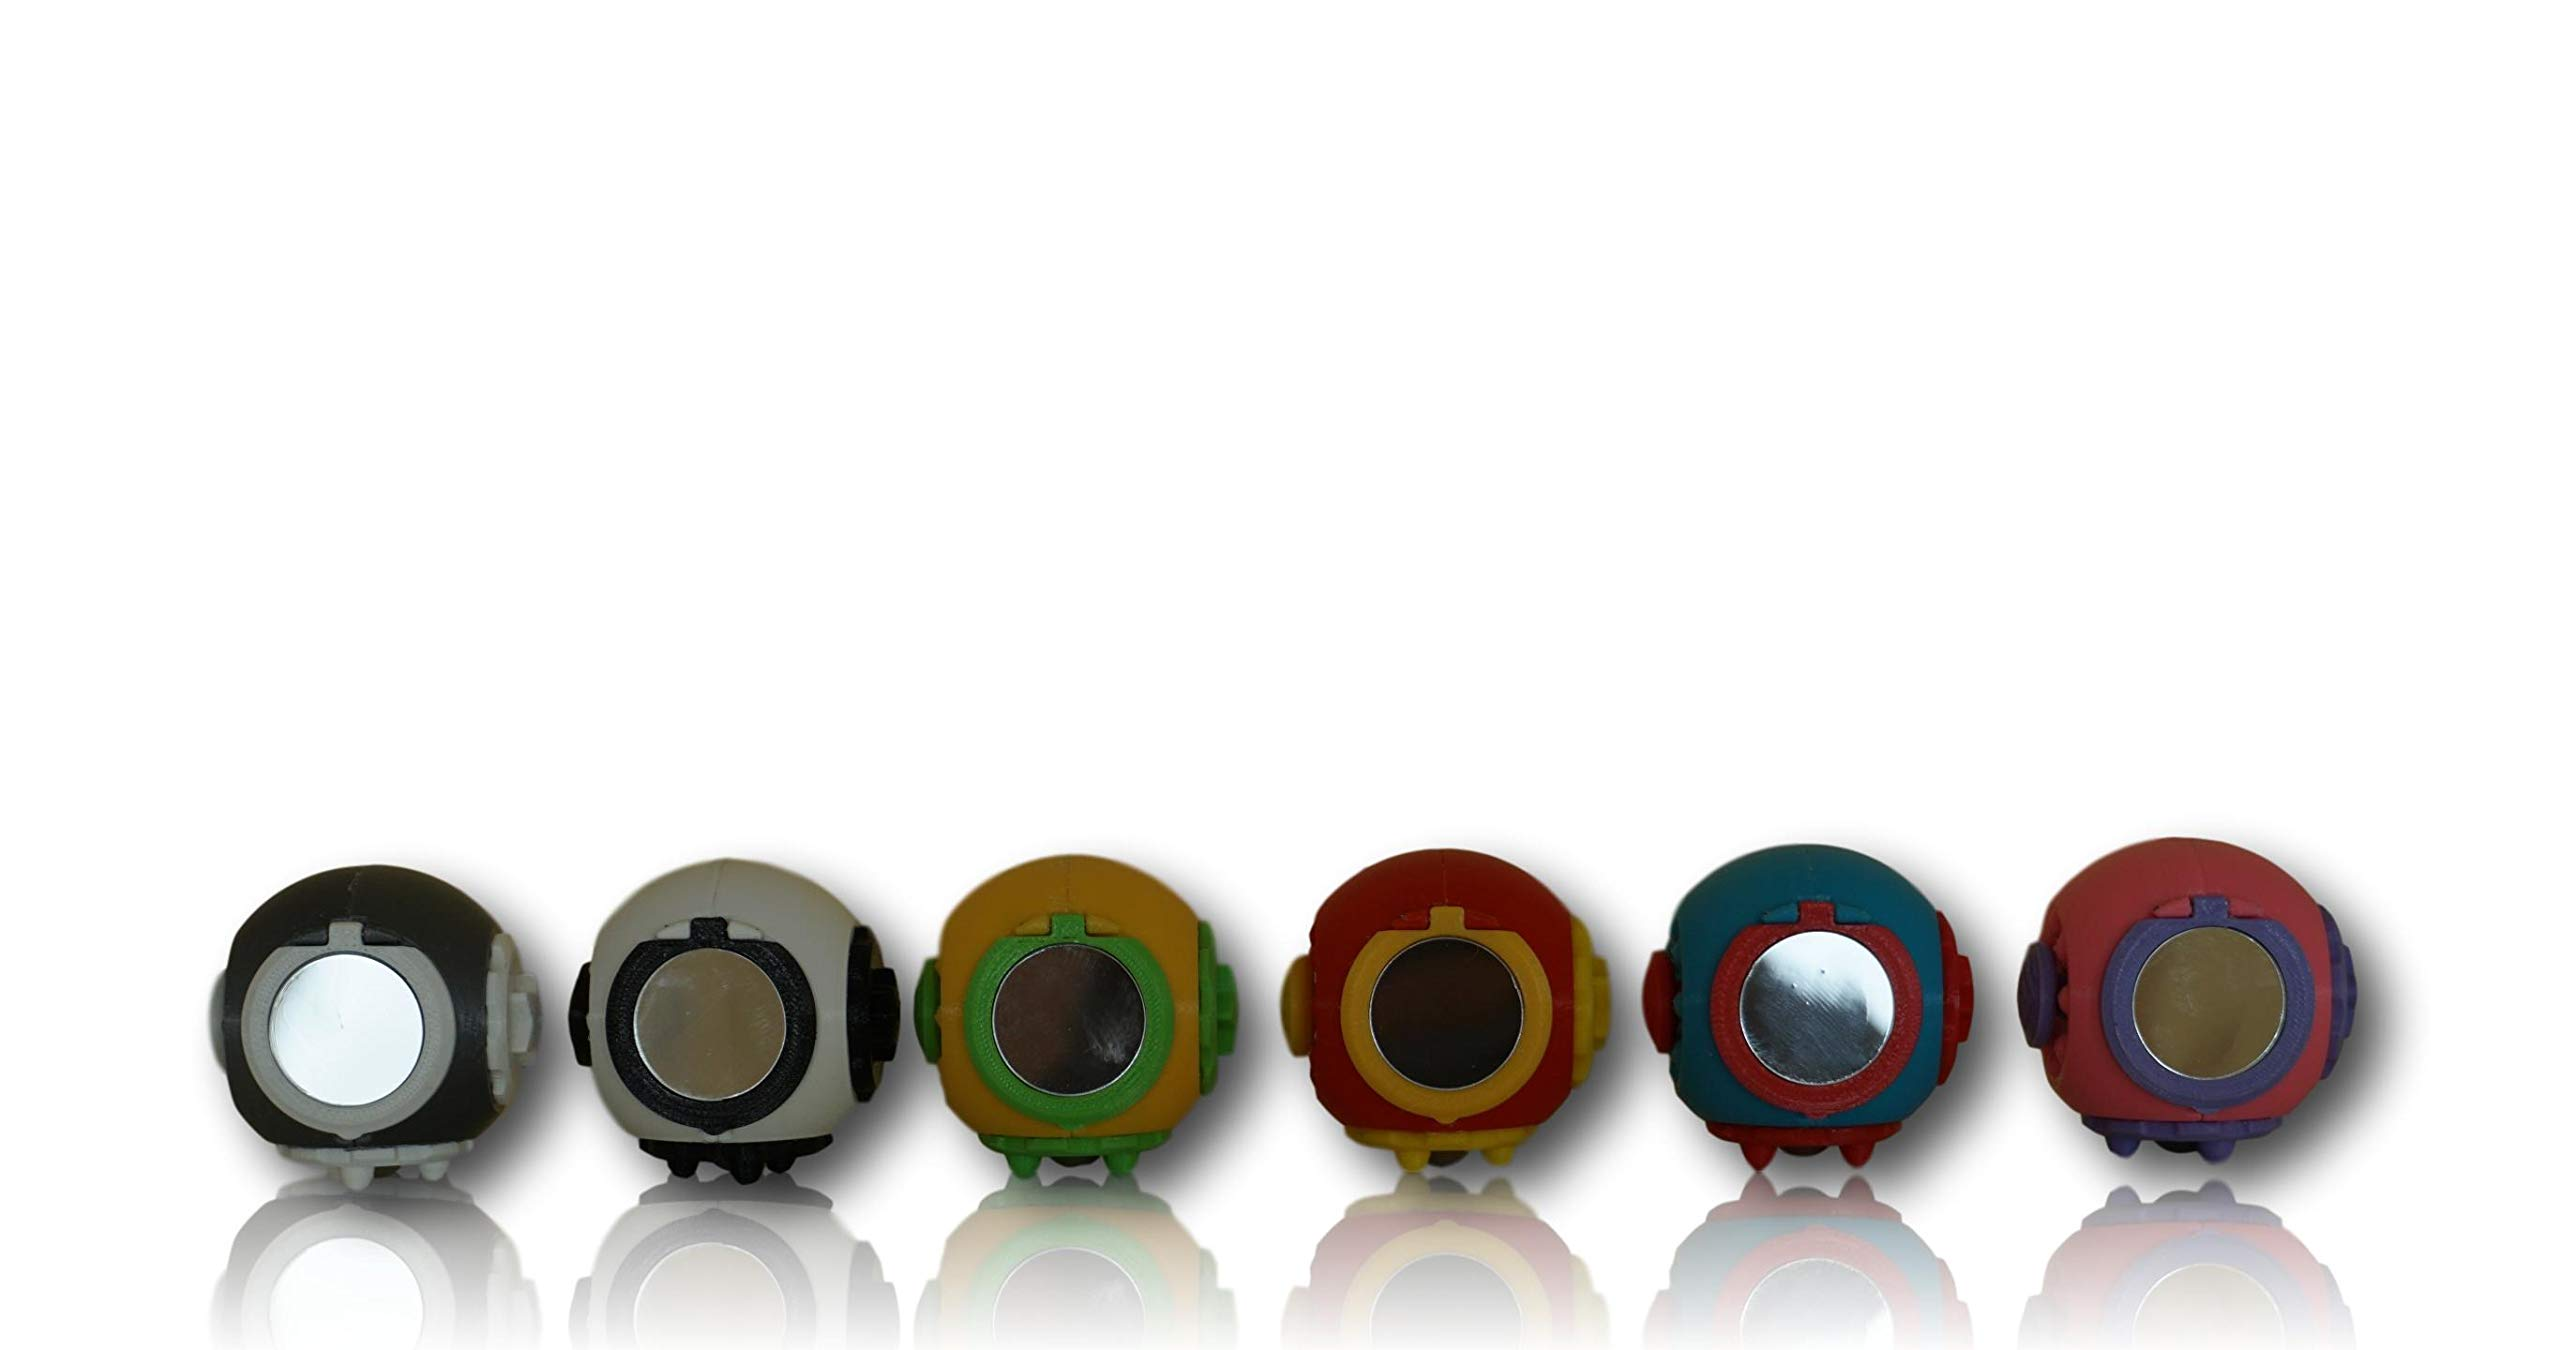 SphereGrip, Fidget toy, Reduce Anxiety and Stress, Increase Self-confidence, Fidget, Storage, Mirror (All 6 combinations)